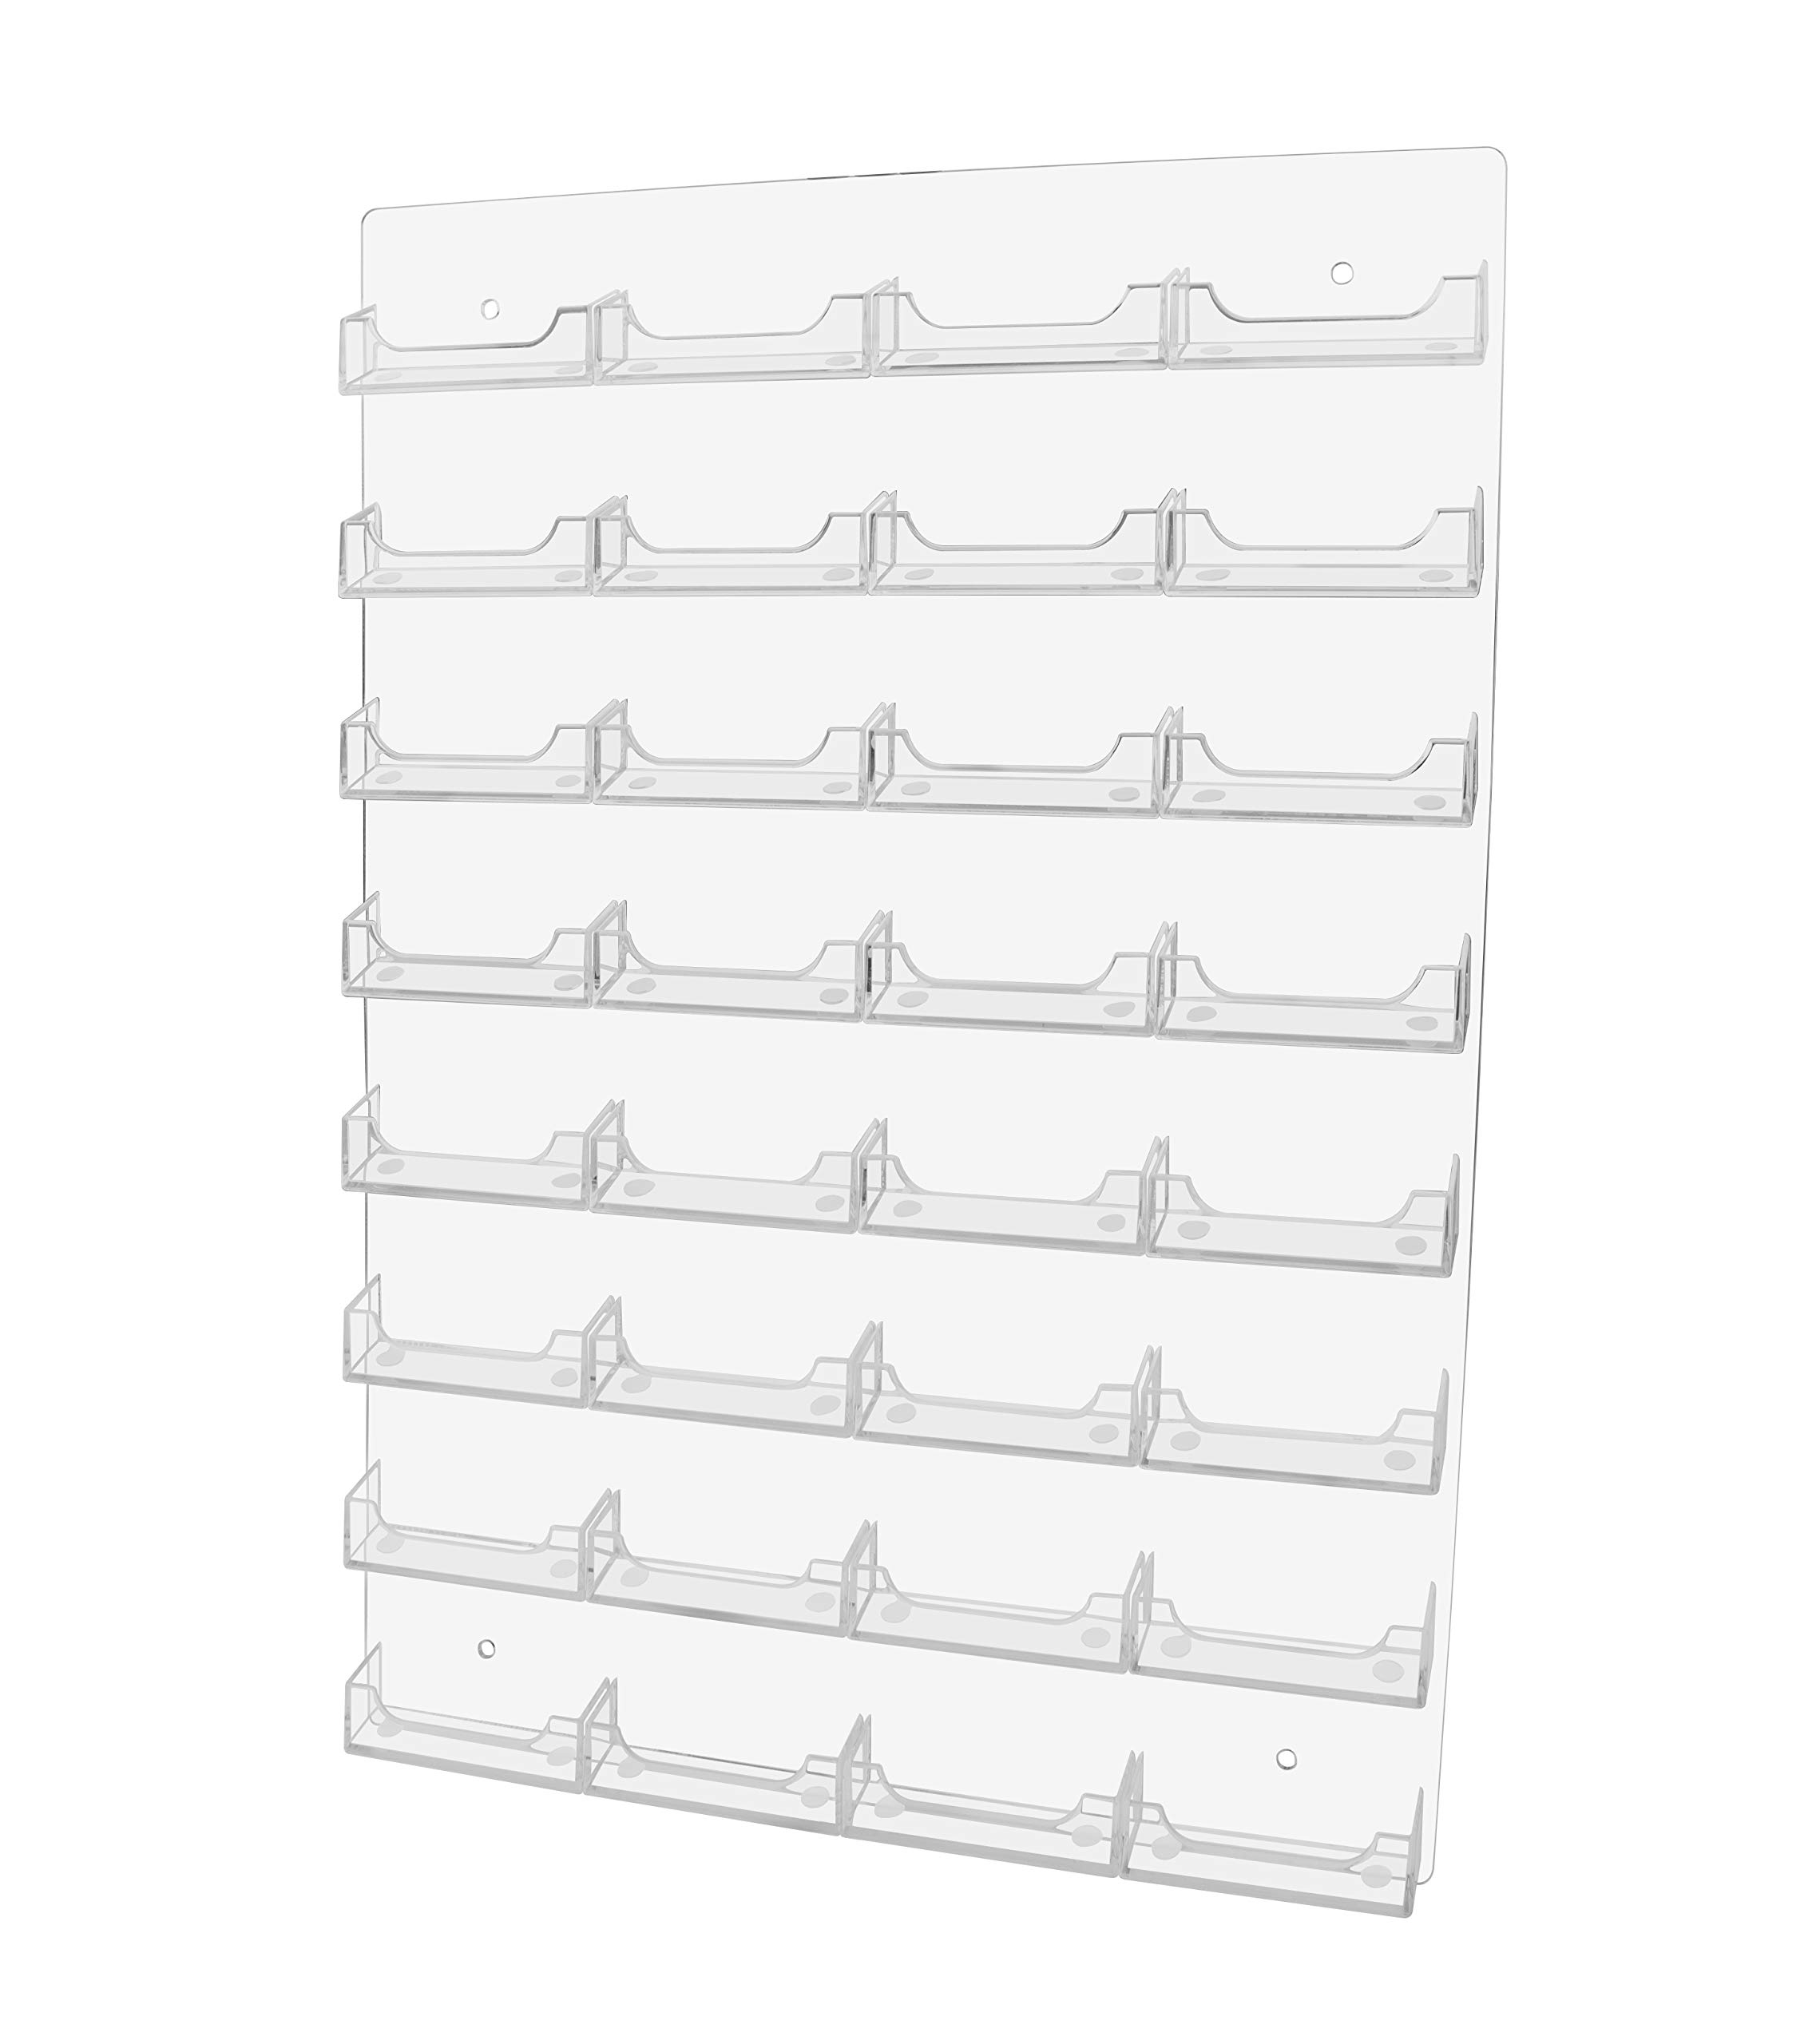 Marketing Holders Multi Pocket Wall Mount Business Card Holder Rack - Acrylic Clear 32 Pocket